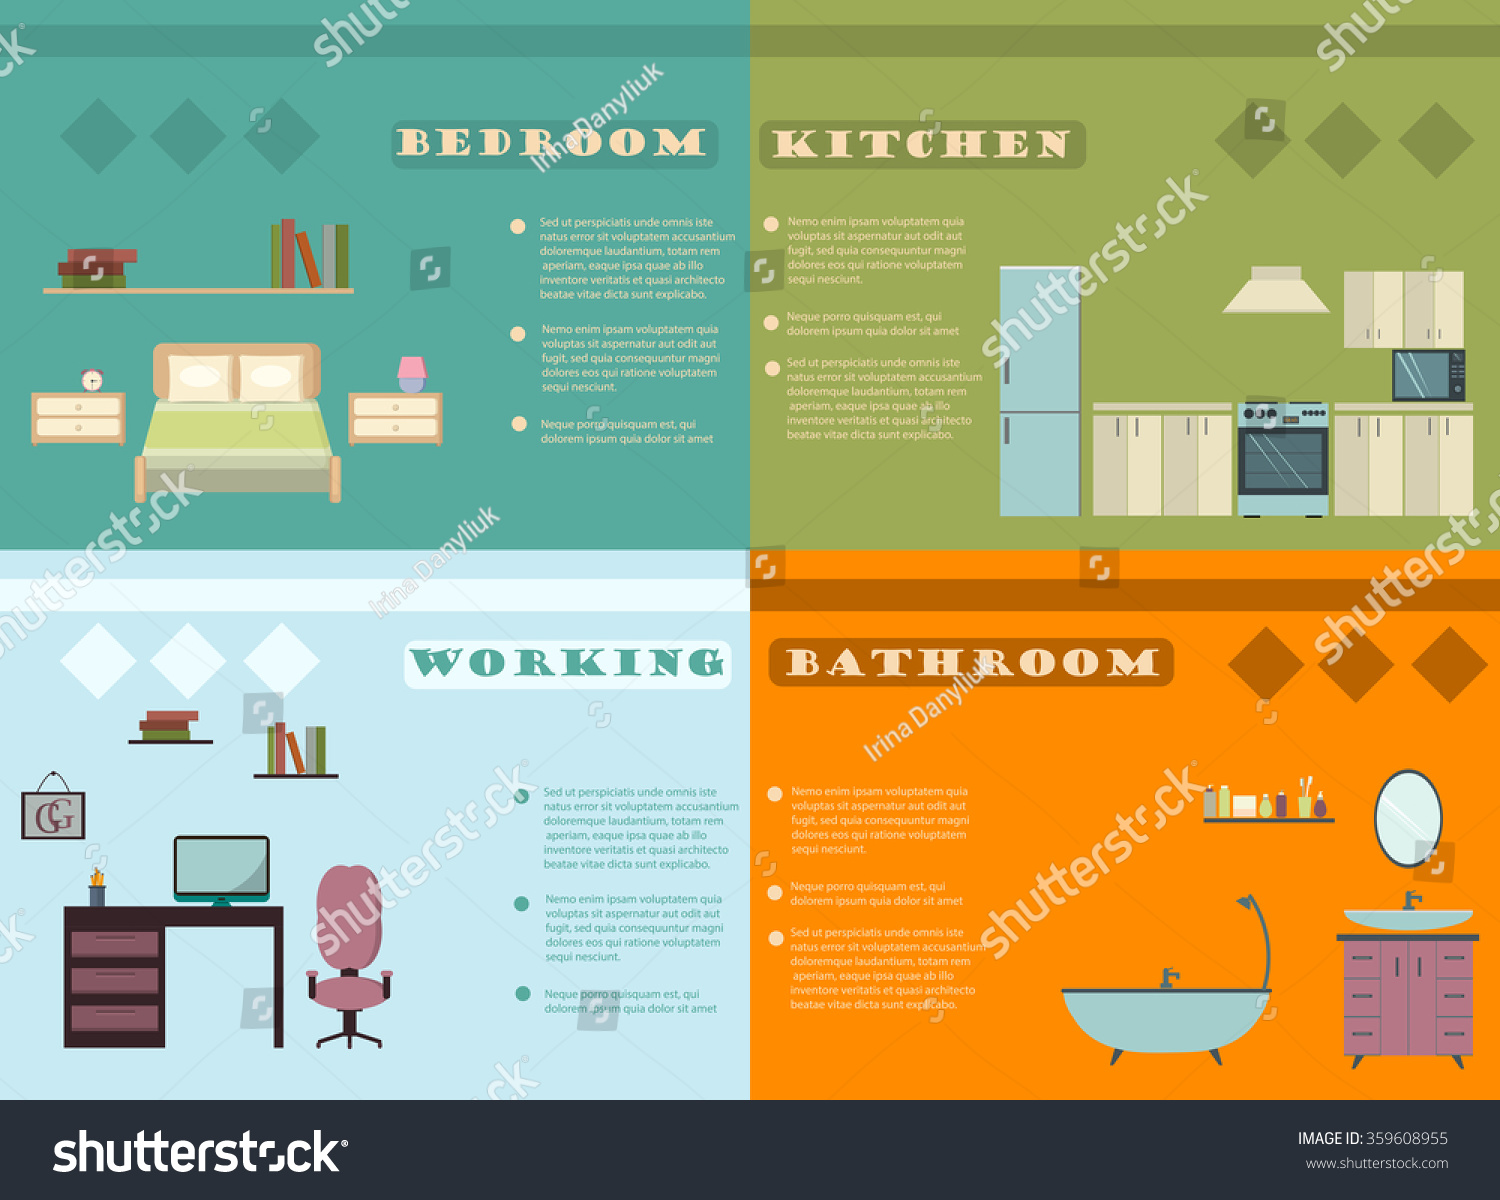 Set Of Elements To Interior Design InfographicsDesign Conceptual Backgrounds With Icons And Infographic